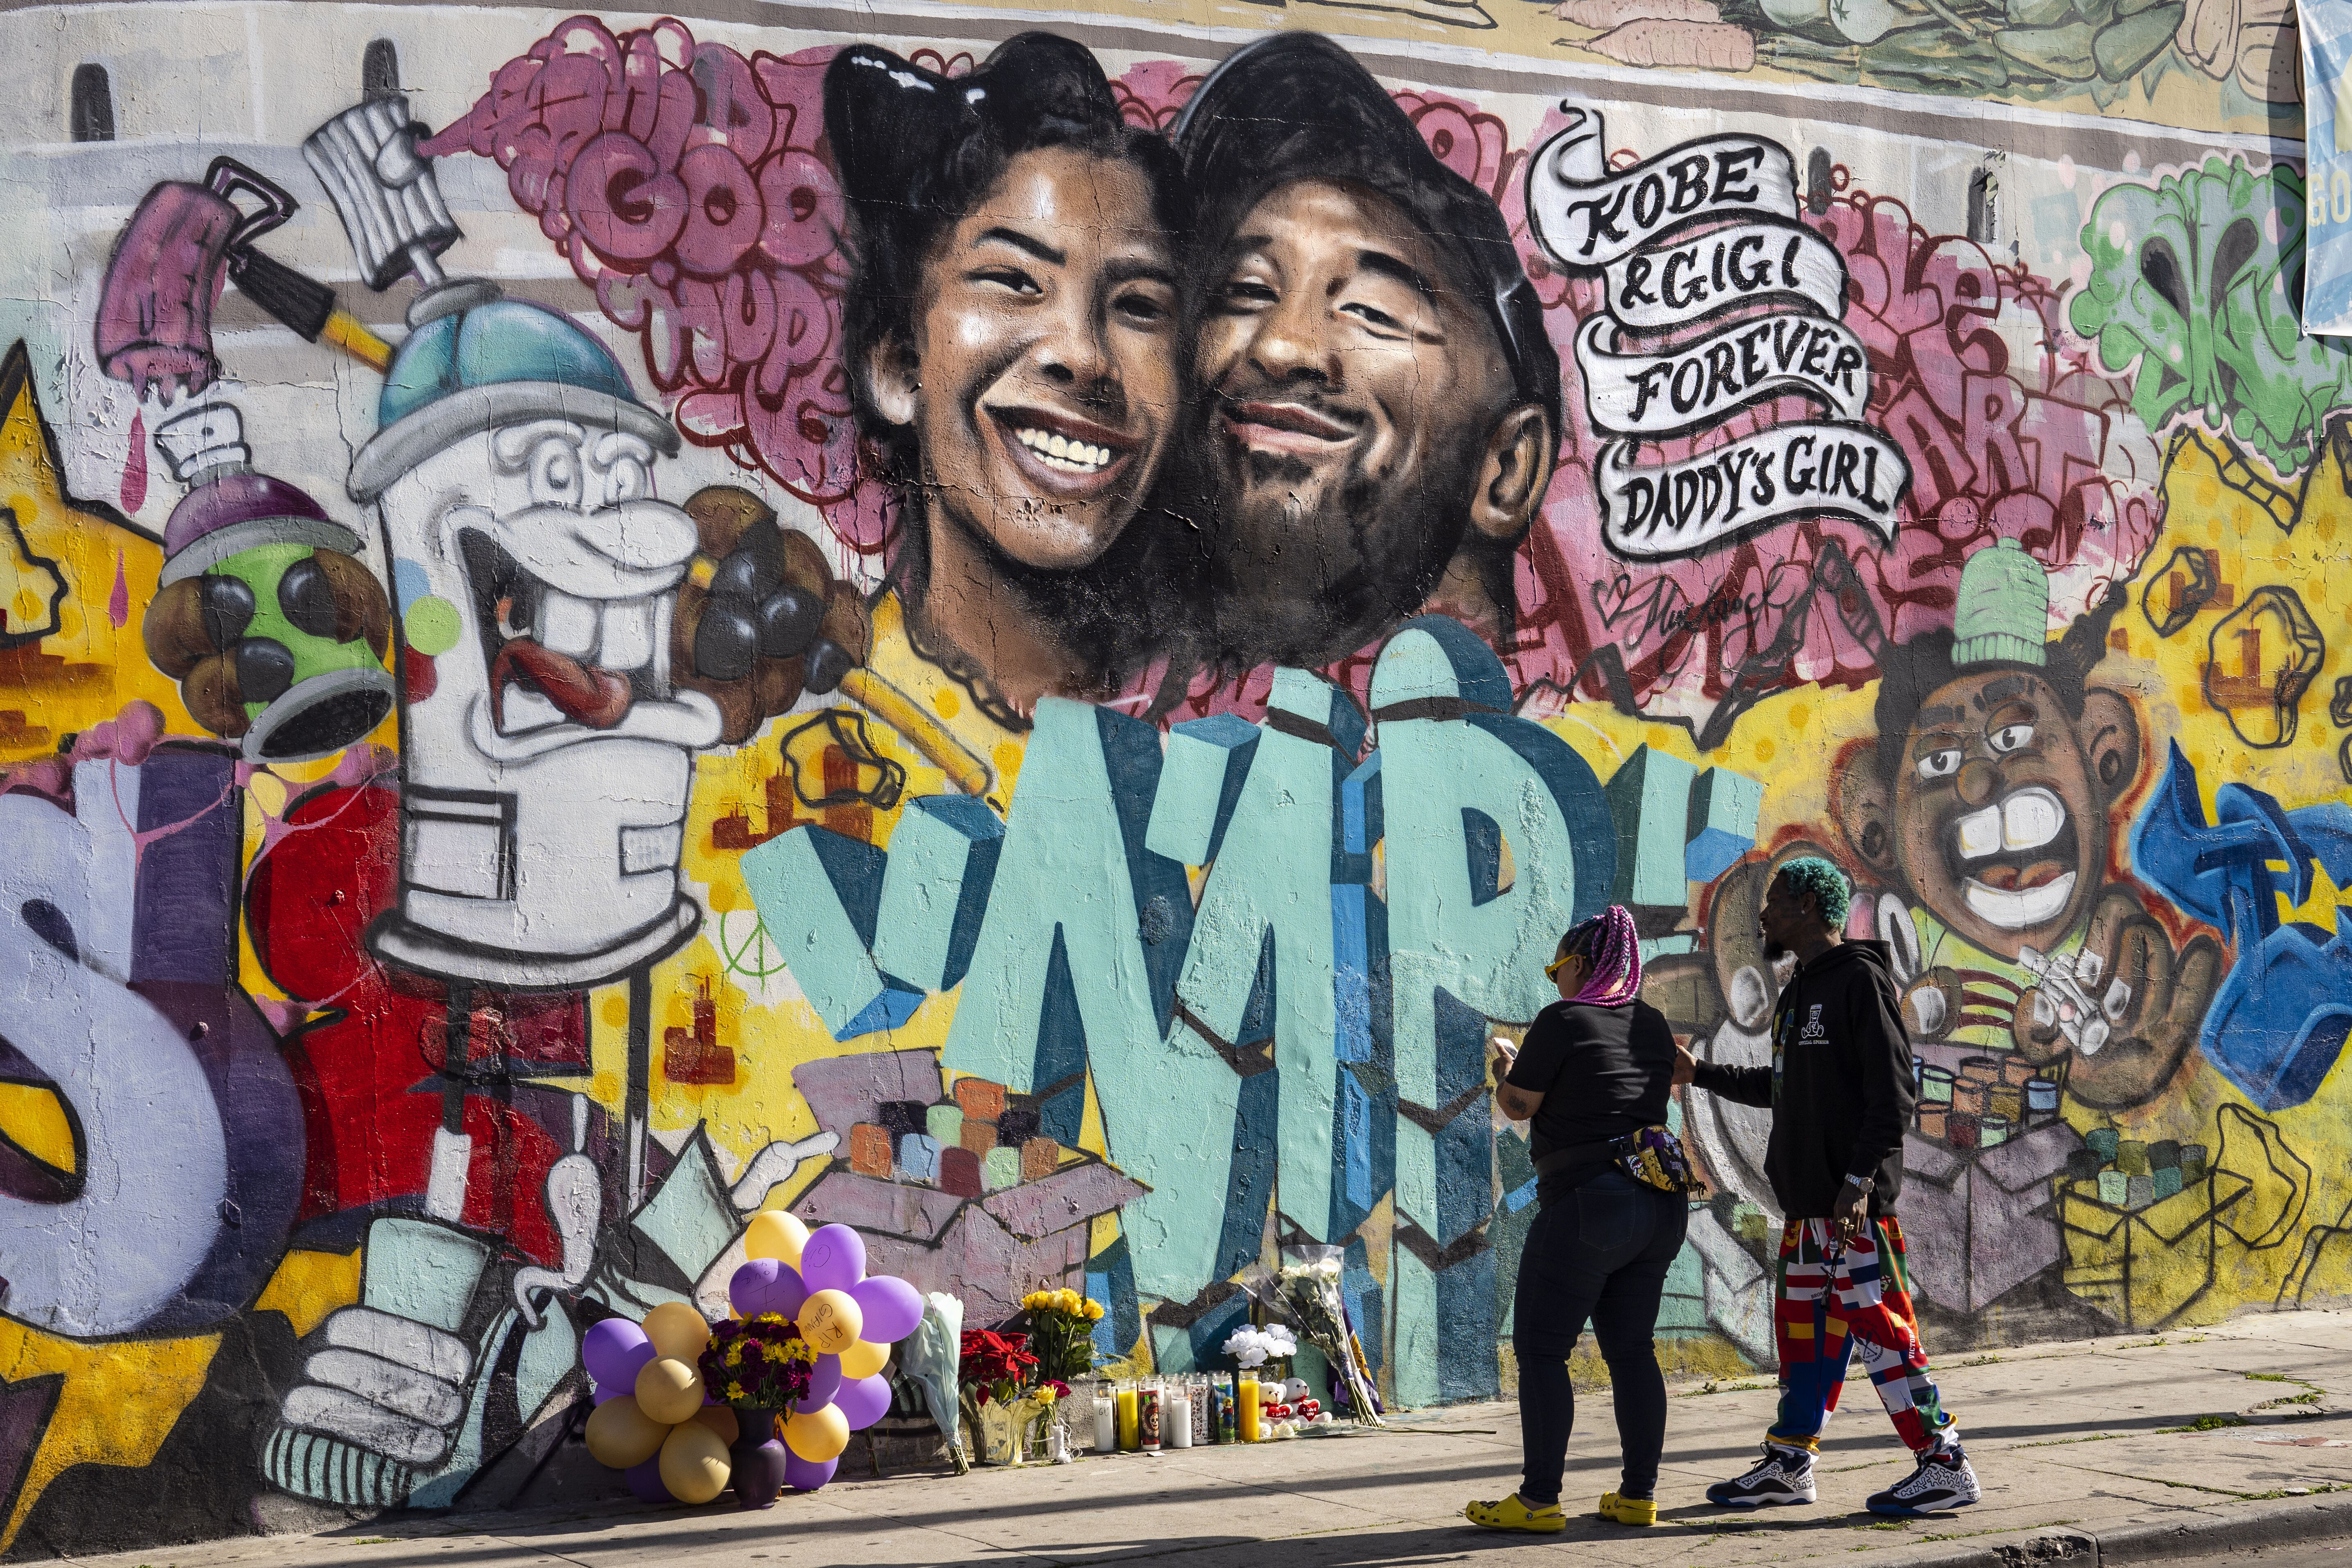 A mural painted by  a mural by the artists Muck Rock and Mr79lts as a tribute to Kobe Bryant and his daughter Gianna/ Source: Getty Images